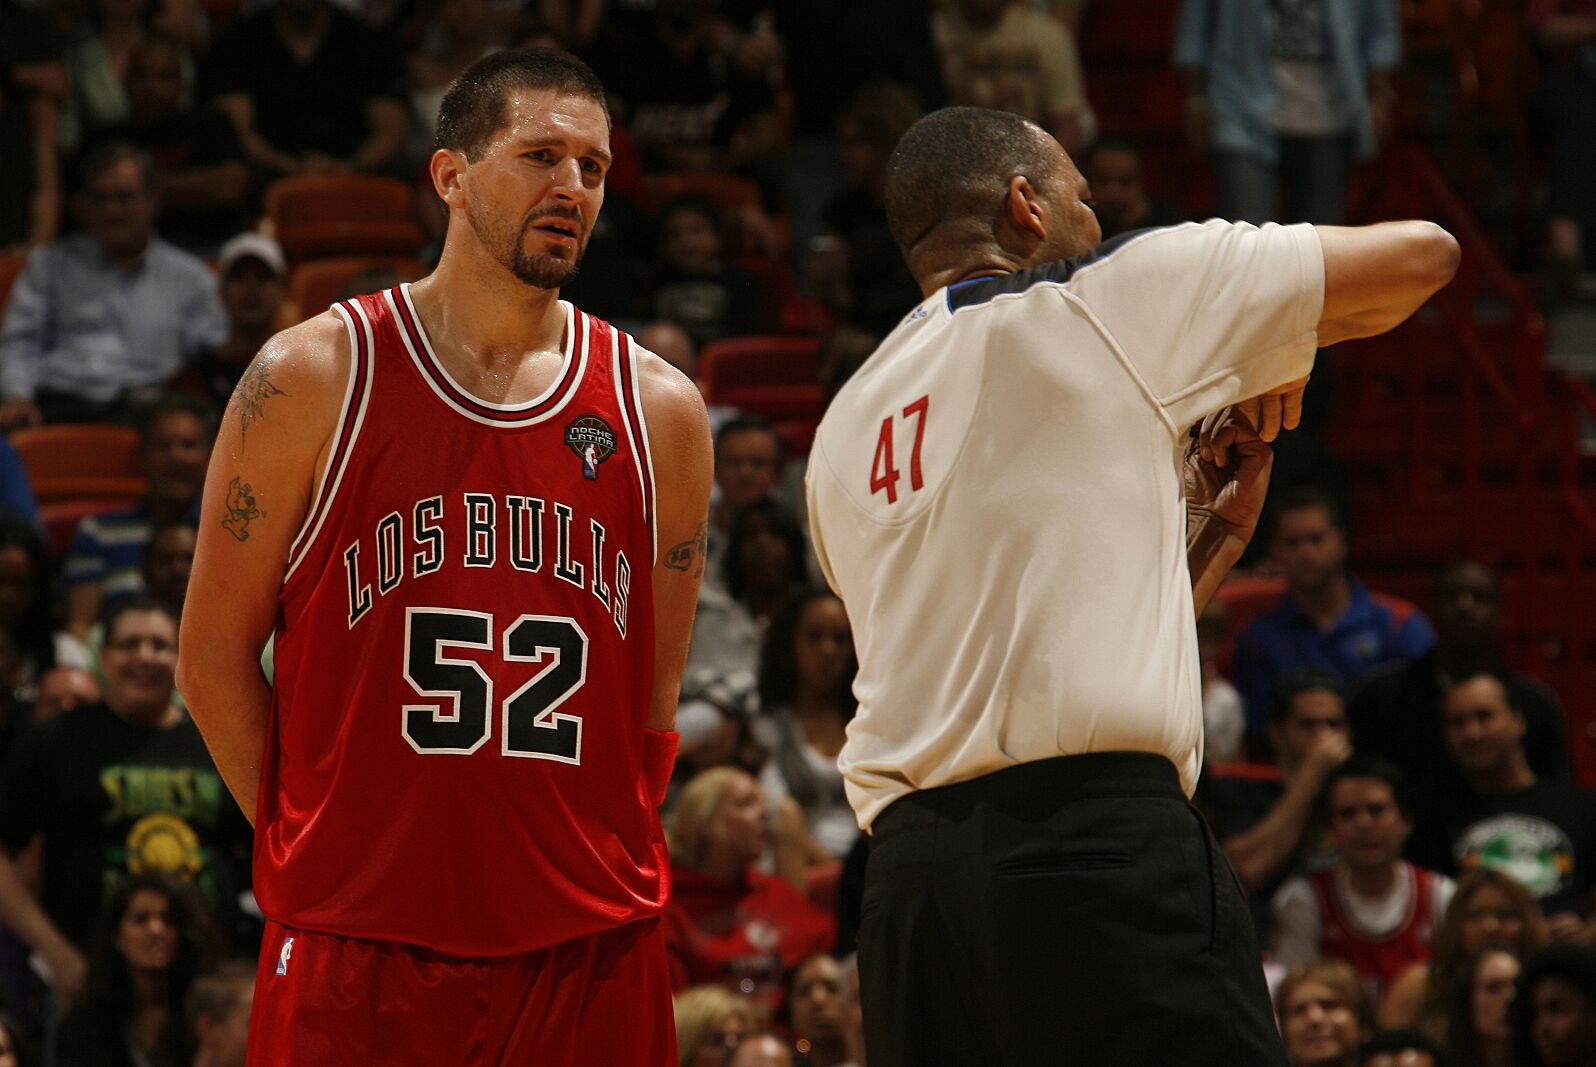 Chicago Bulls players from the awful post-Jordan era, where are they now?